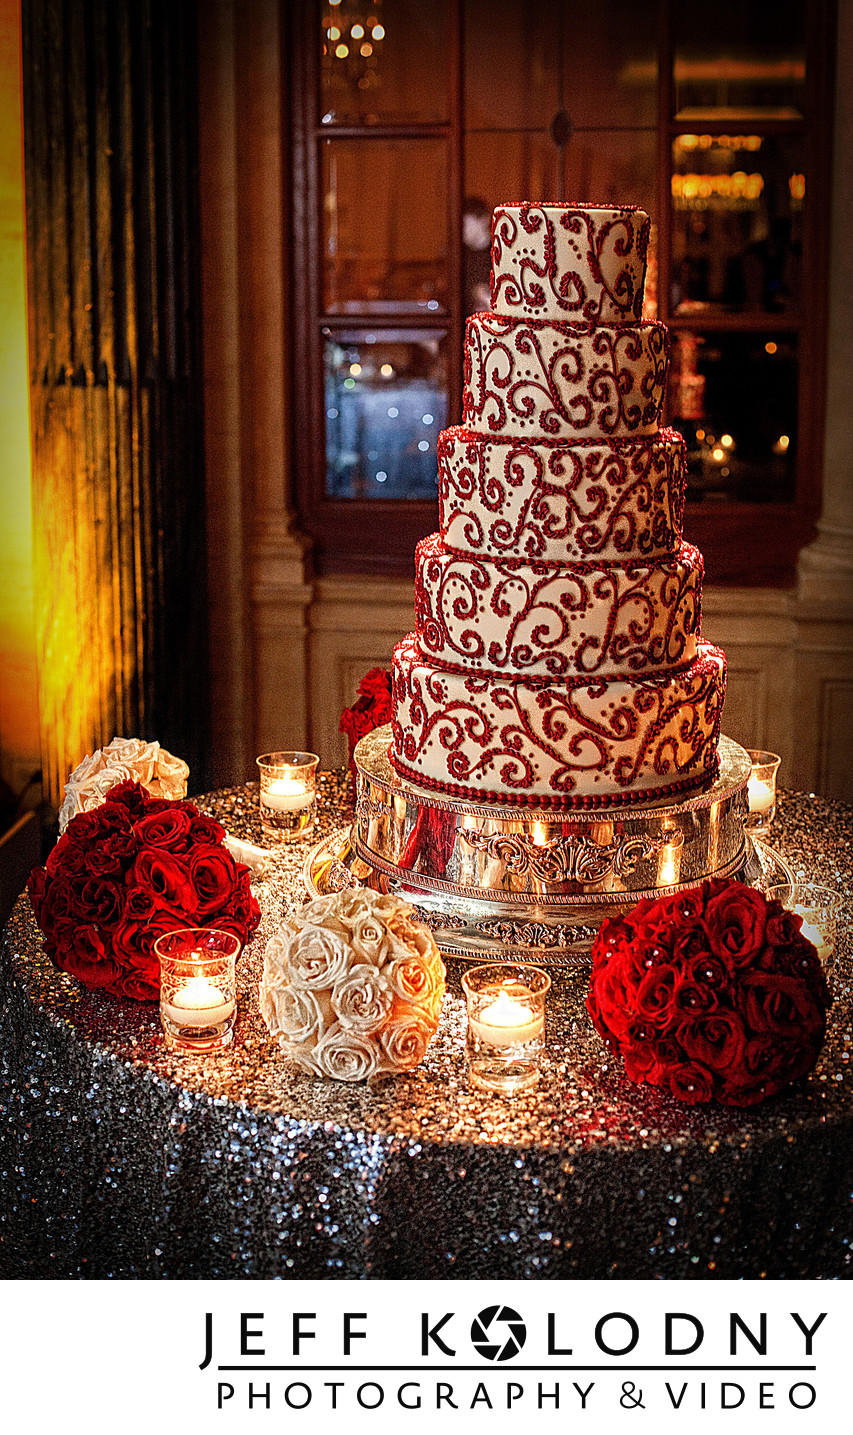 Wedding cake photo taken at The Breakers, Palm Beach.